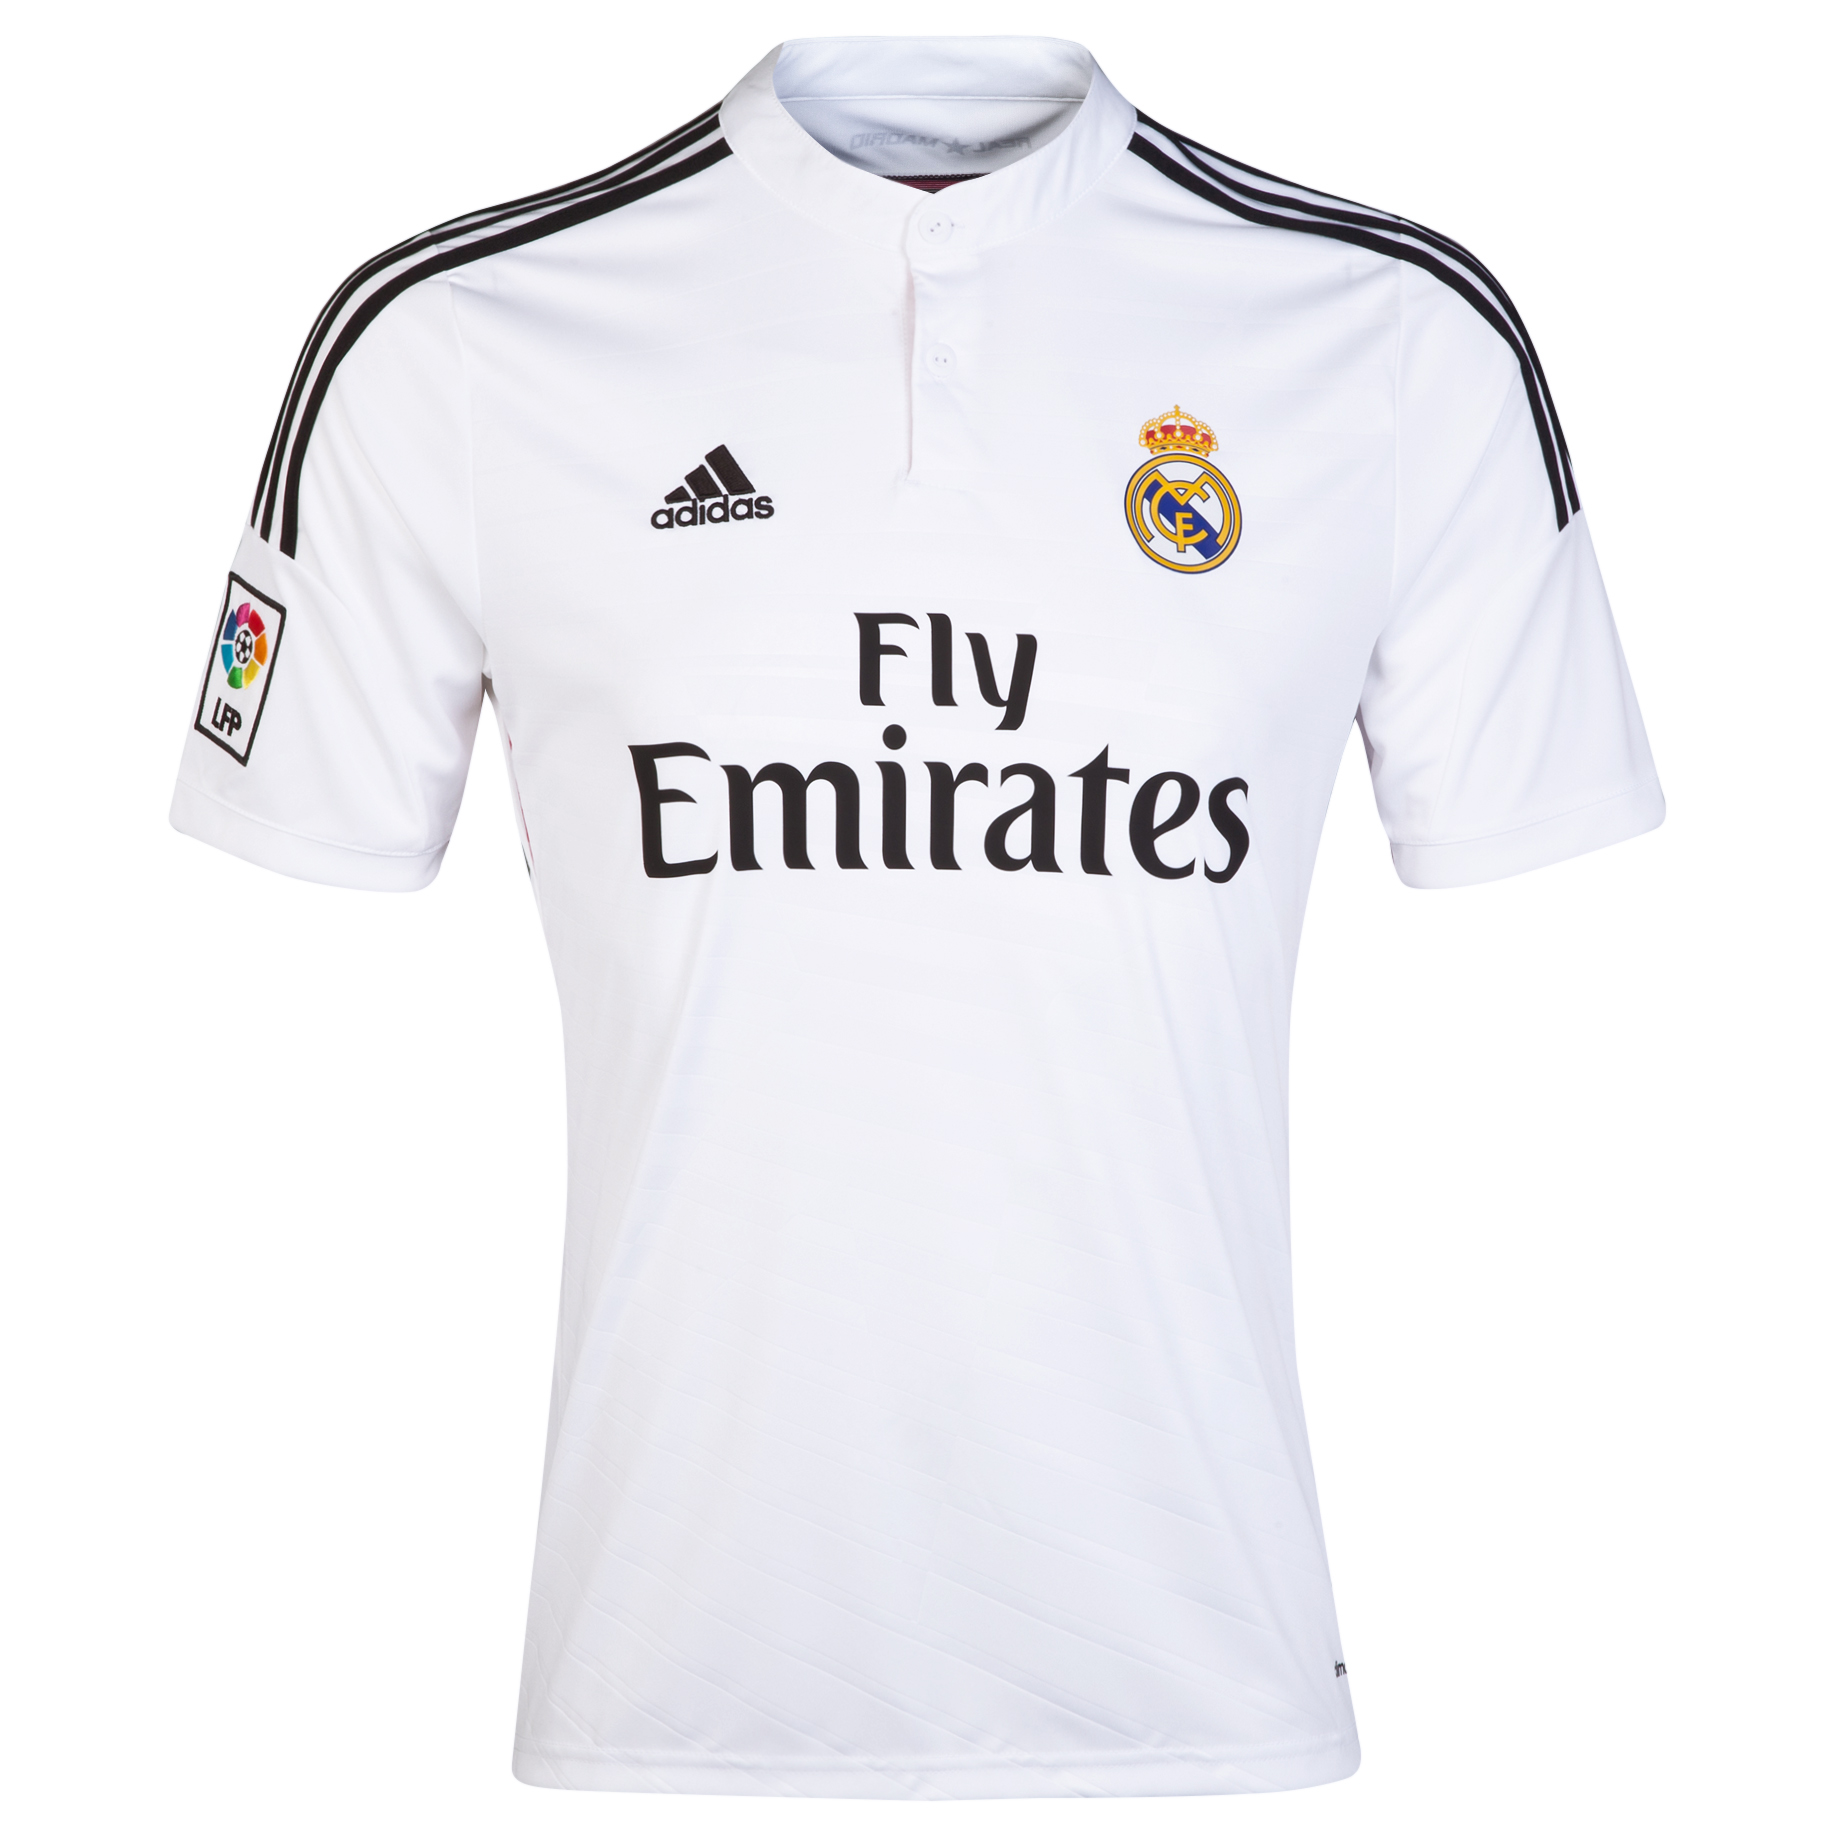 Real Madrid Home Adi Zero Shirt 2014/15